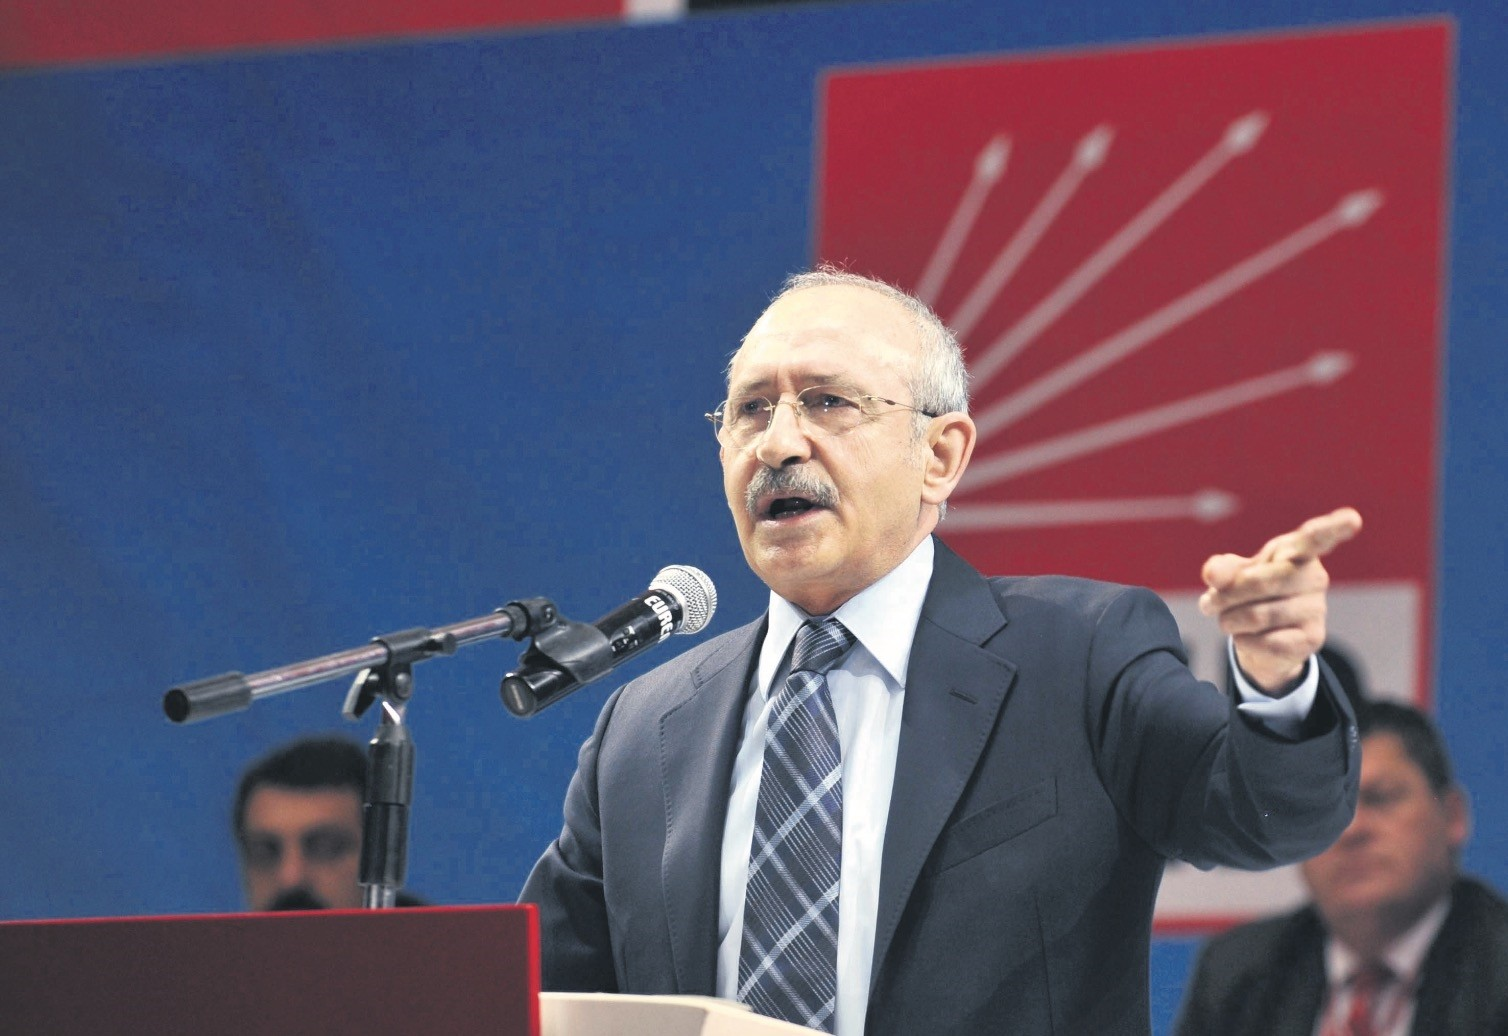 CHP Chairman Kemal Ku0131lu0131u00e7darou011flu, speaking at a party congress. He was become main target of criticisms after the election lose on June 24.